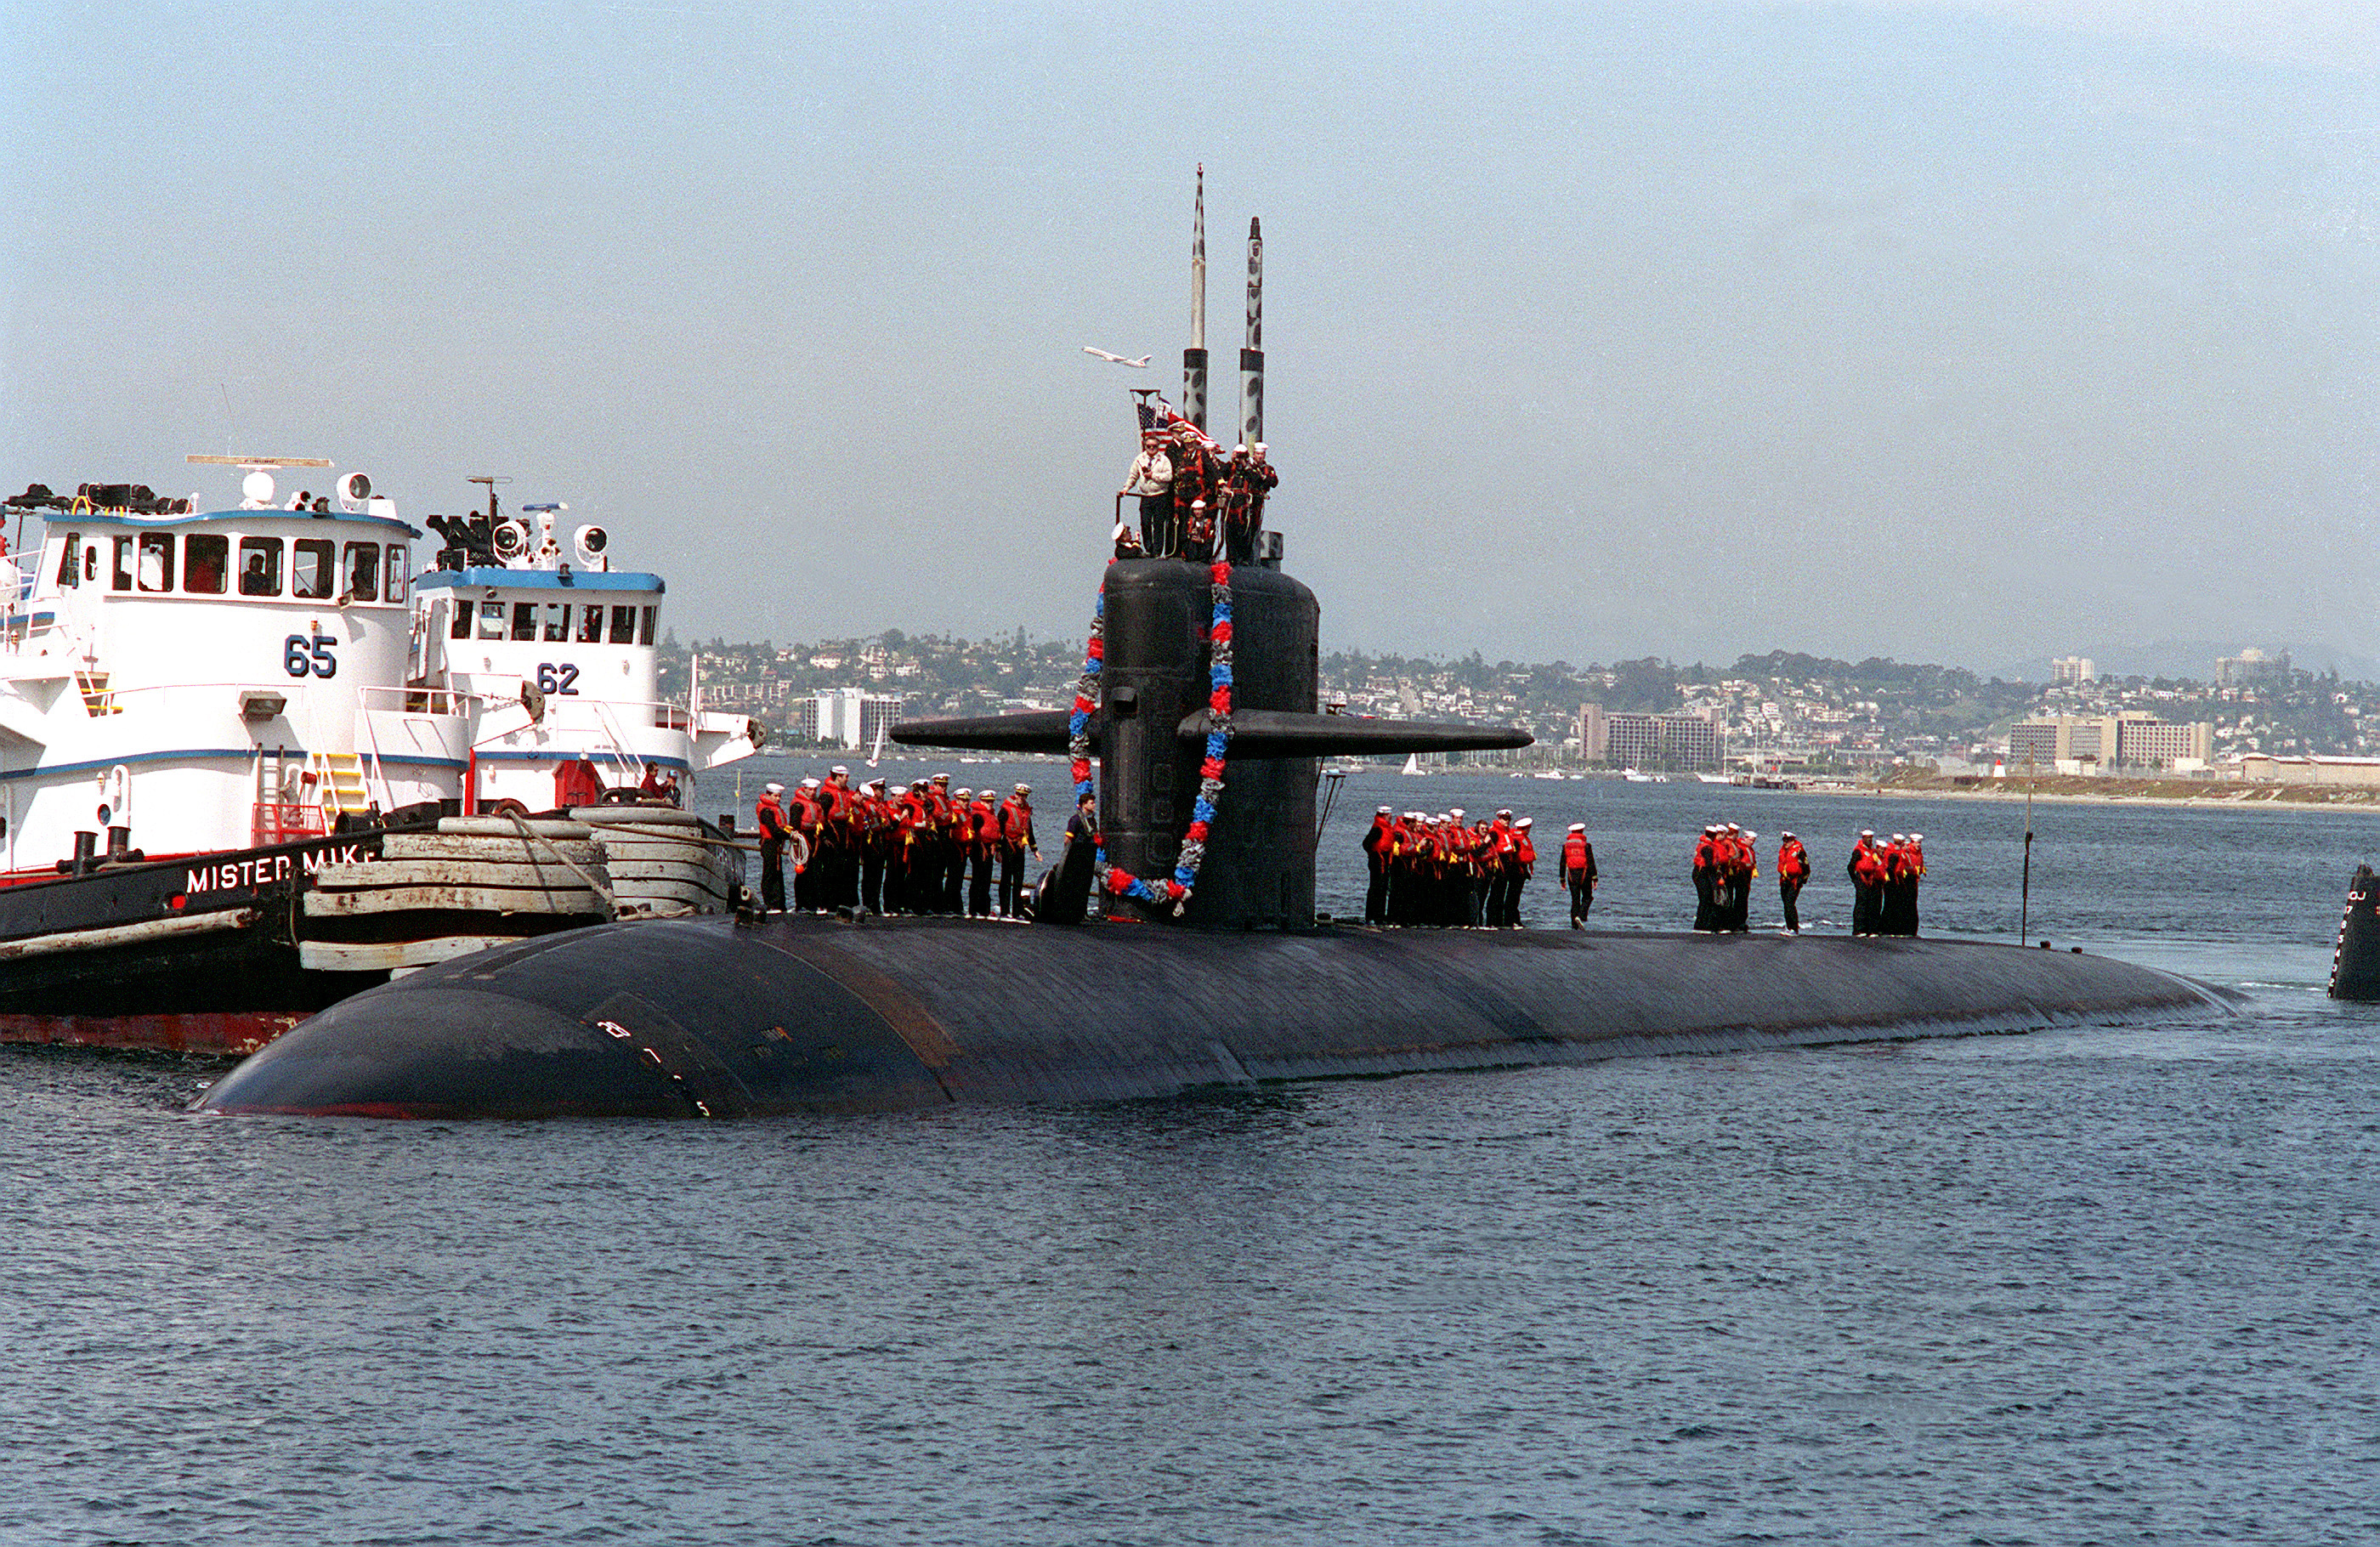 https://upload.wikimedia.org/wikipedia/commons/e/ec/USS_Chicago_(SSN-721)_returns_from_Desert_Storm.jpg